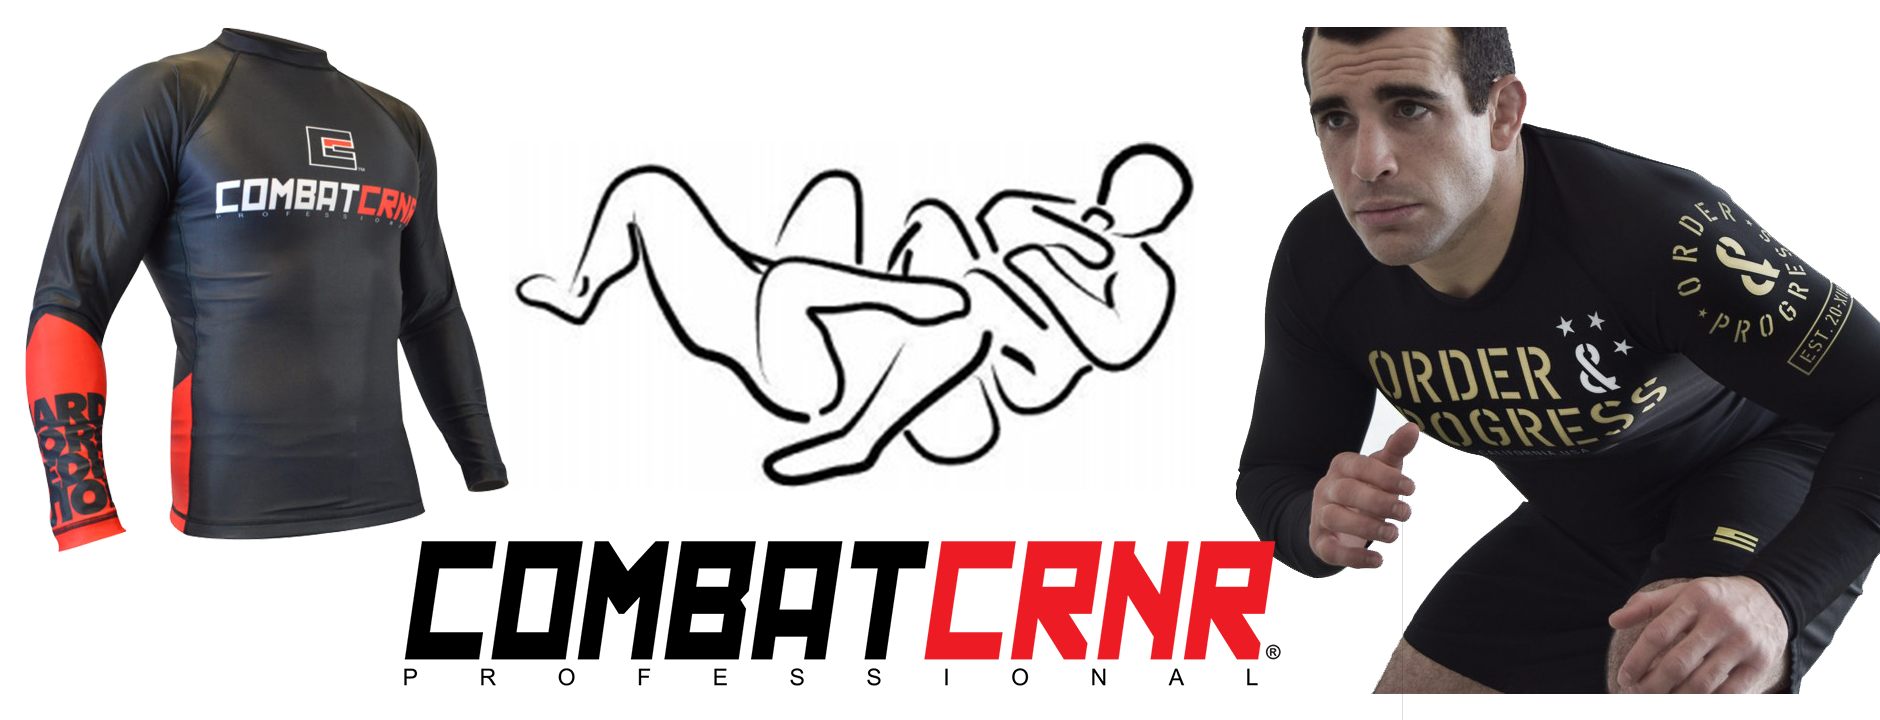 Combat Corner rash guard for mma og bjj